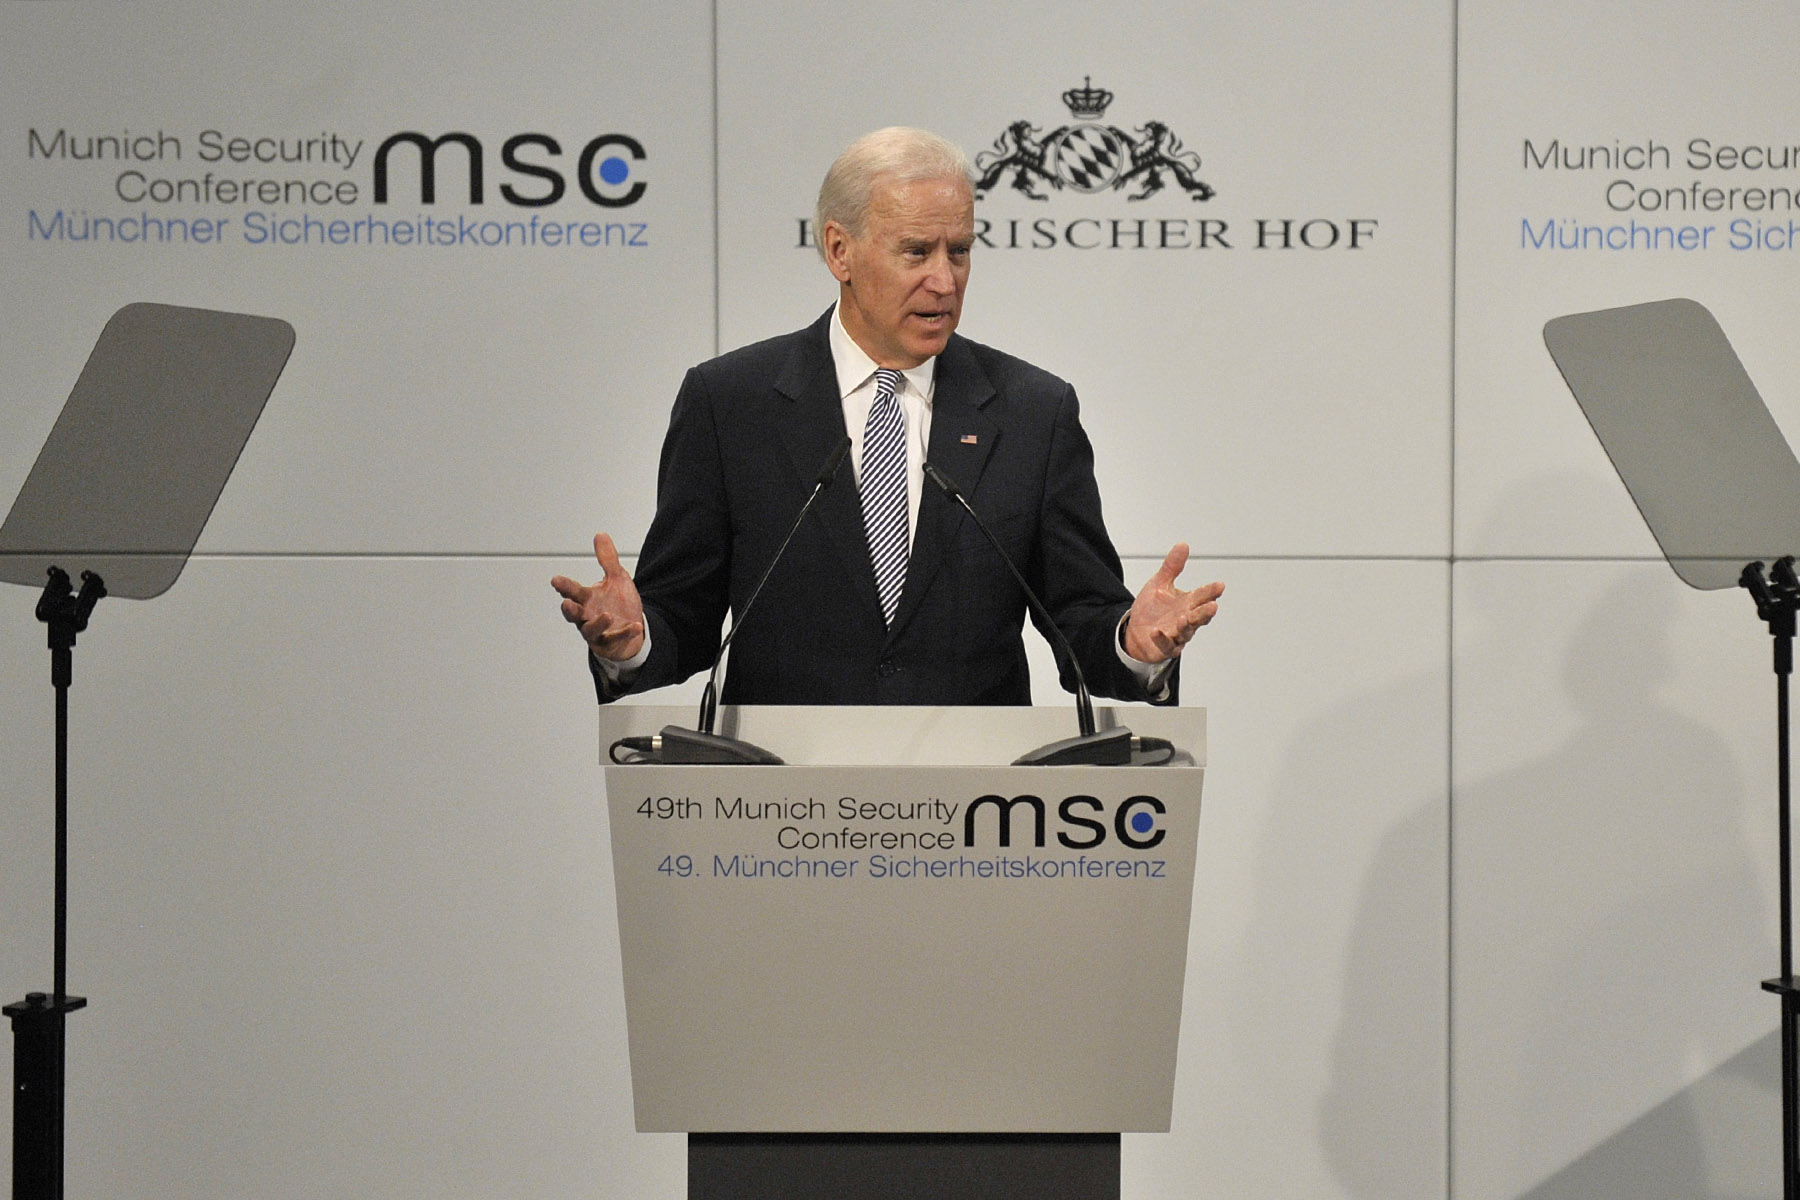 Vice President Joe Biden delivers remarks during the 49th Munich Security Conference in Munich, Germany, Feb. 2, 2013. (DoD Photo By Glenn Fawcett) (Released)